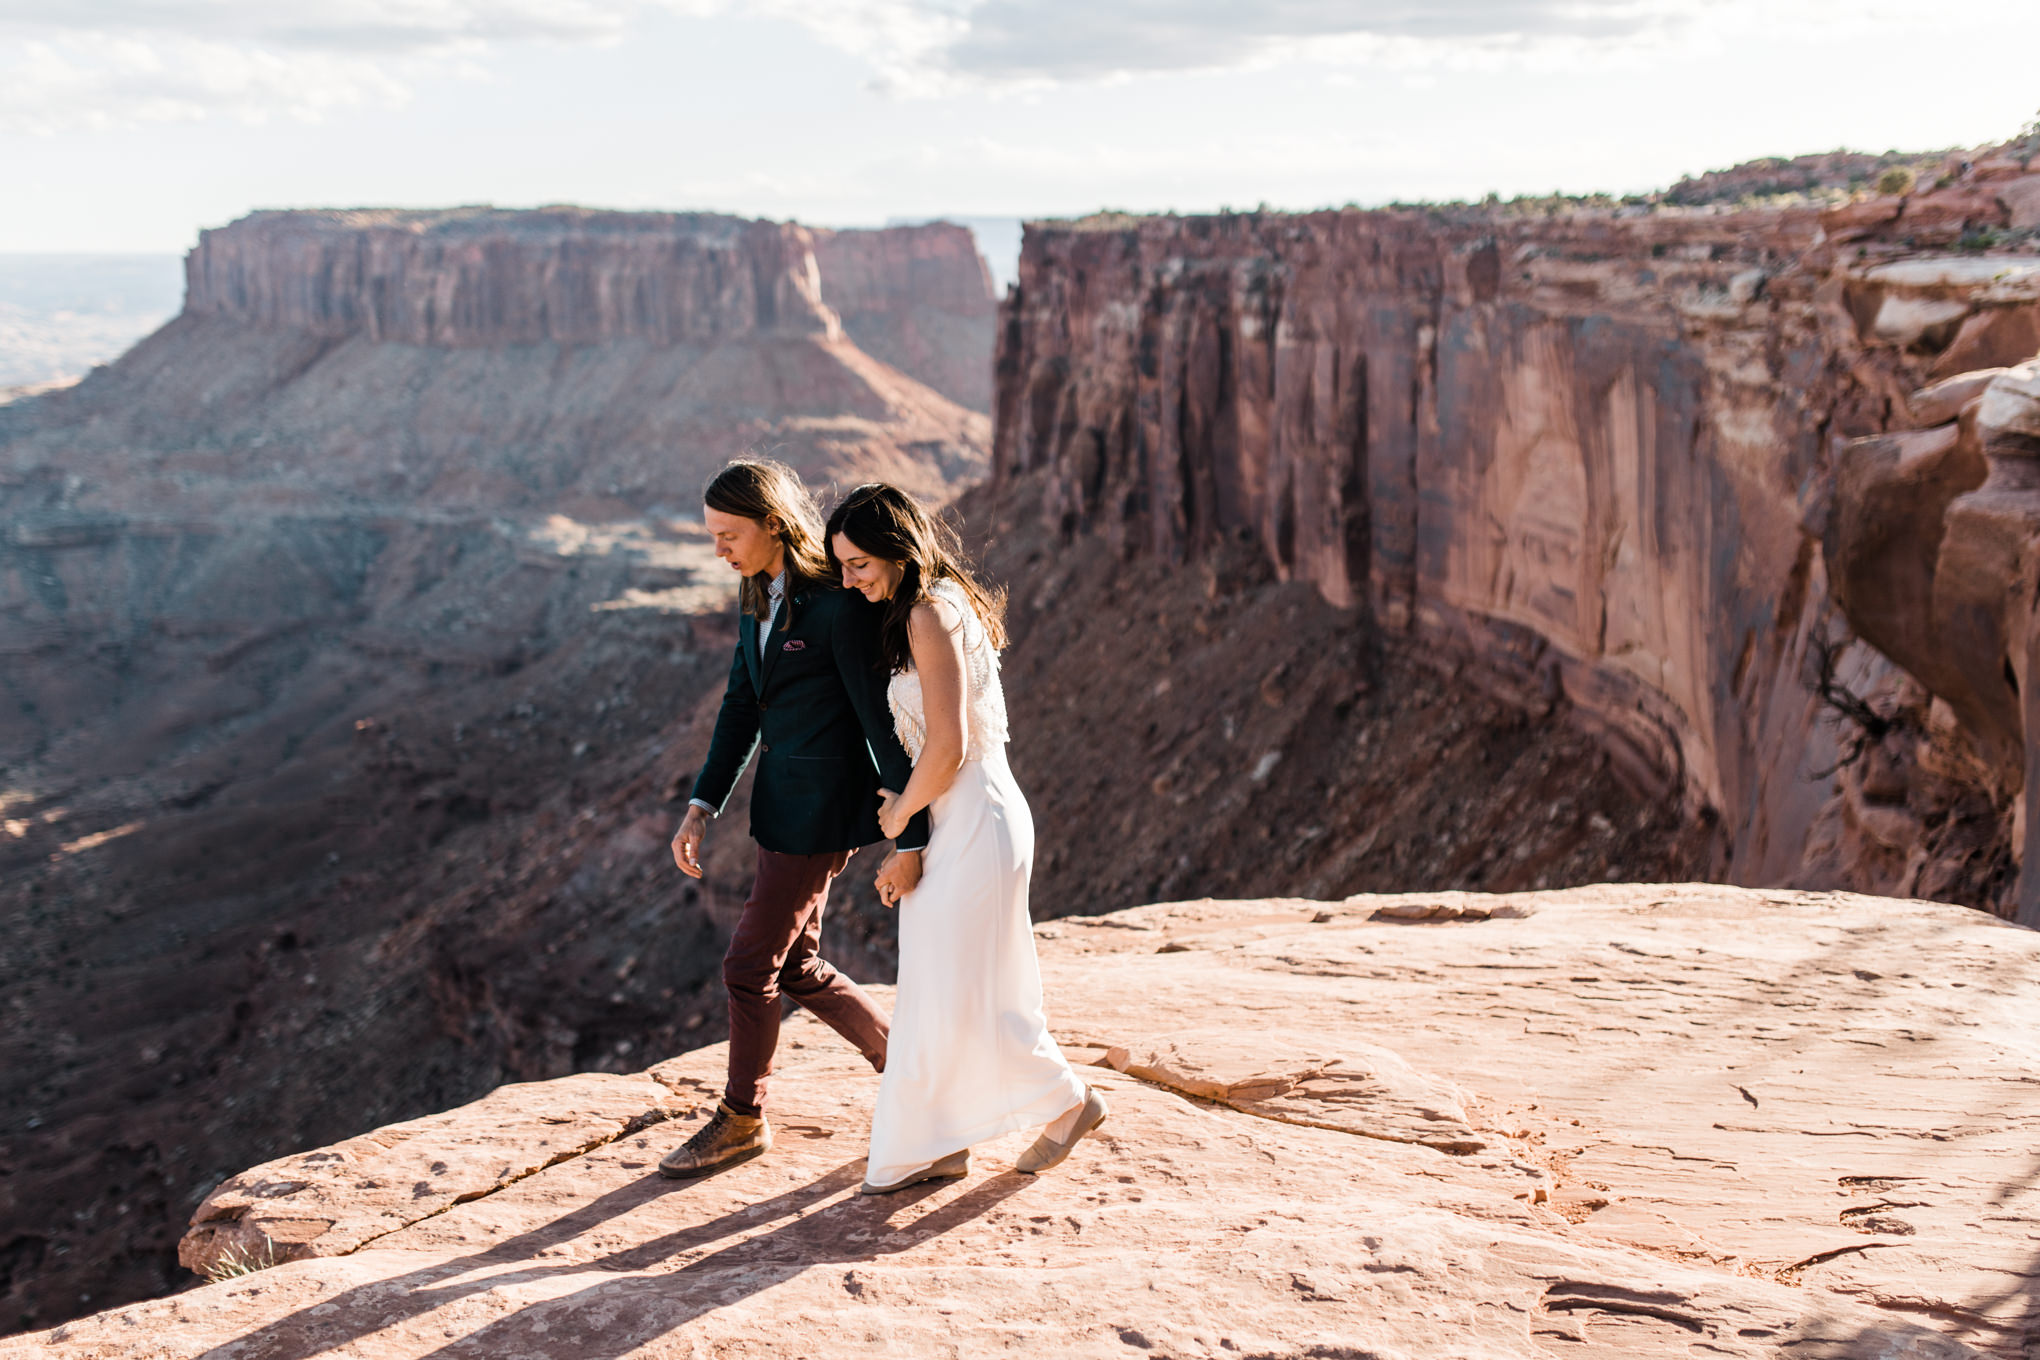 bride and groom couple on their wedding day in canyonlands national park near moab utah